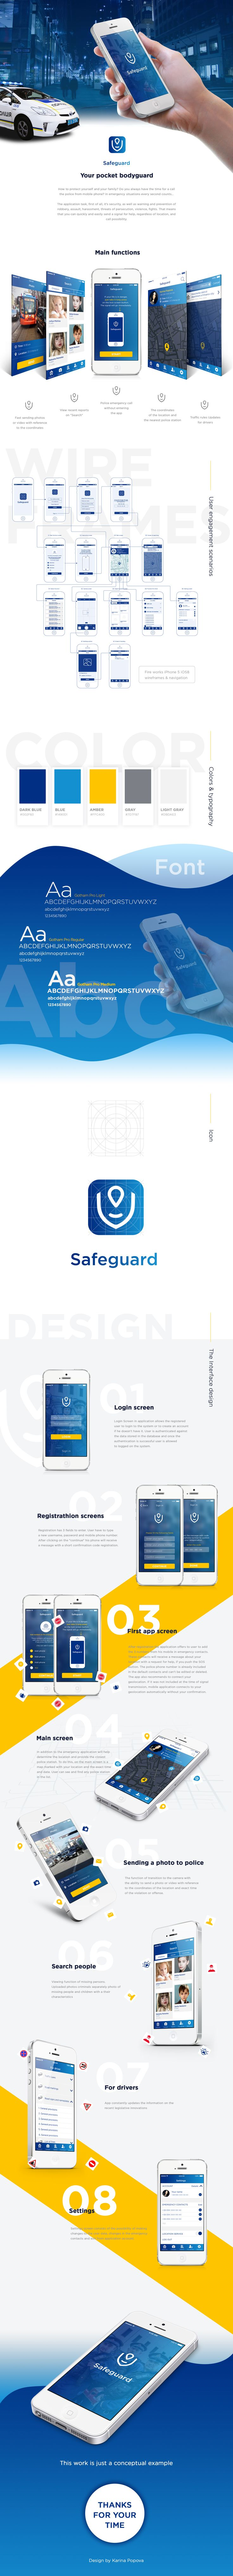 """Check out this @Behance project: """"Mobile app with function emergency call the police"""" https://www.behance.net/gallery/47141003/Mobile-app-with-function-emergency-call-the-police"""